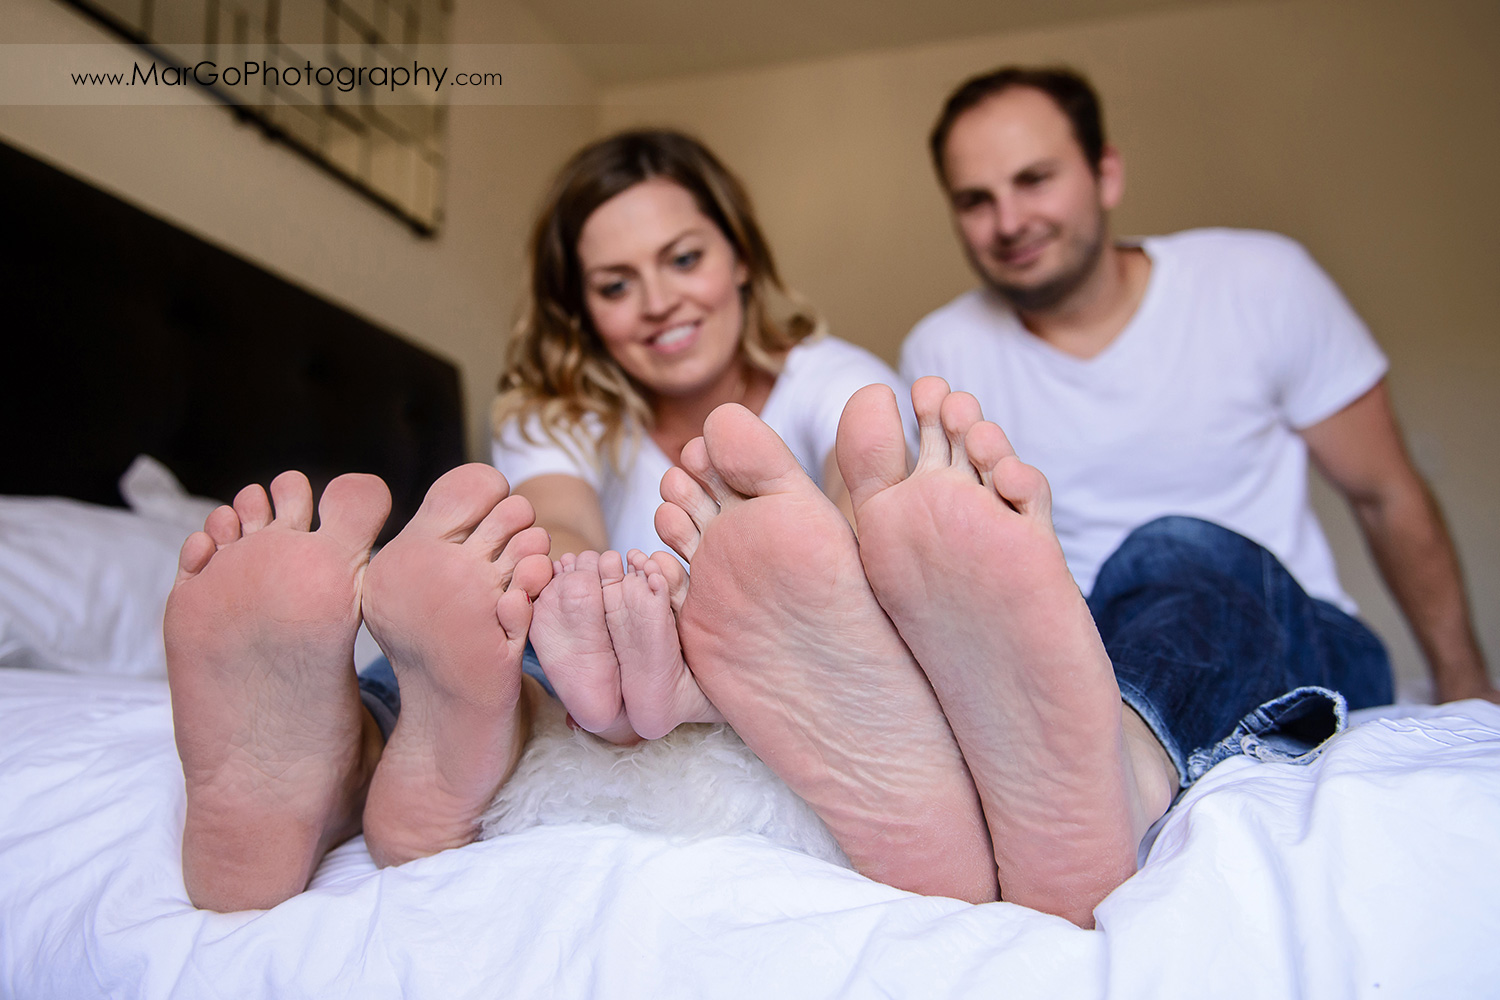 feet shot of family of three in white T-shirts and jeans during newborn session